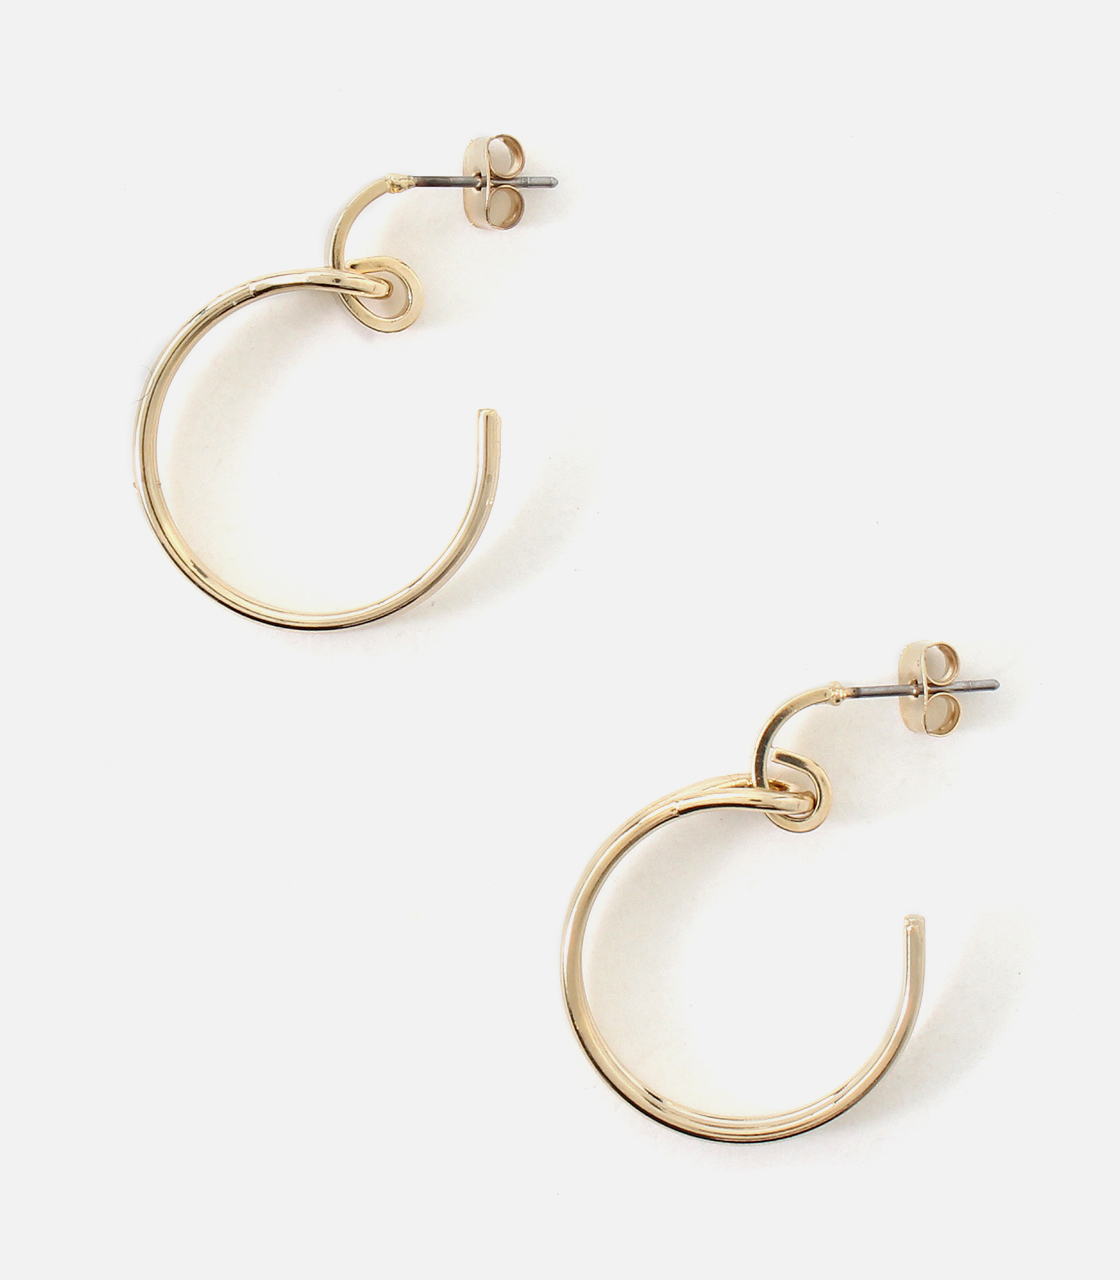 SWAYING HOOP EARRINGS/スウェイングフープピアス 詳細画像 L/GLD 1